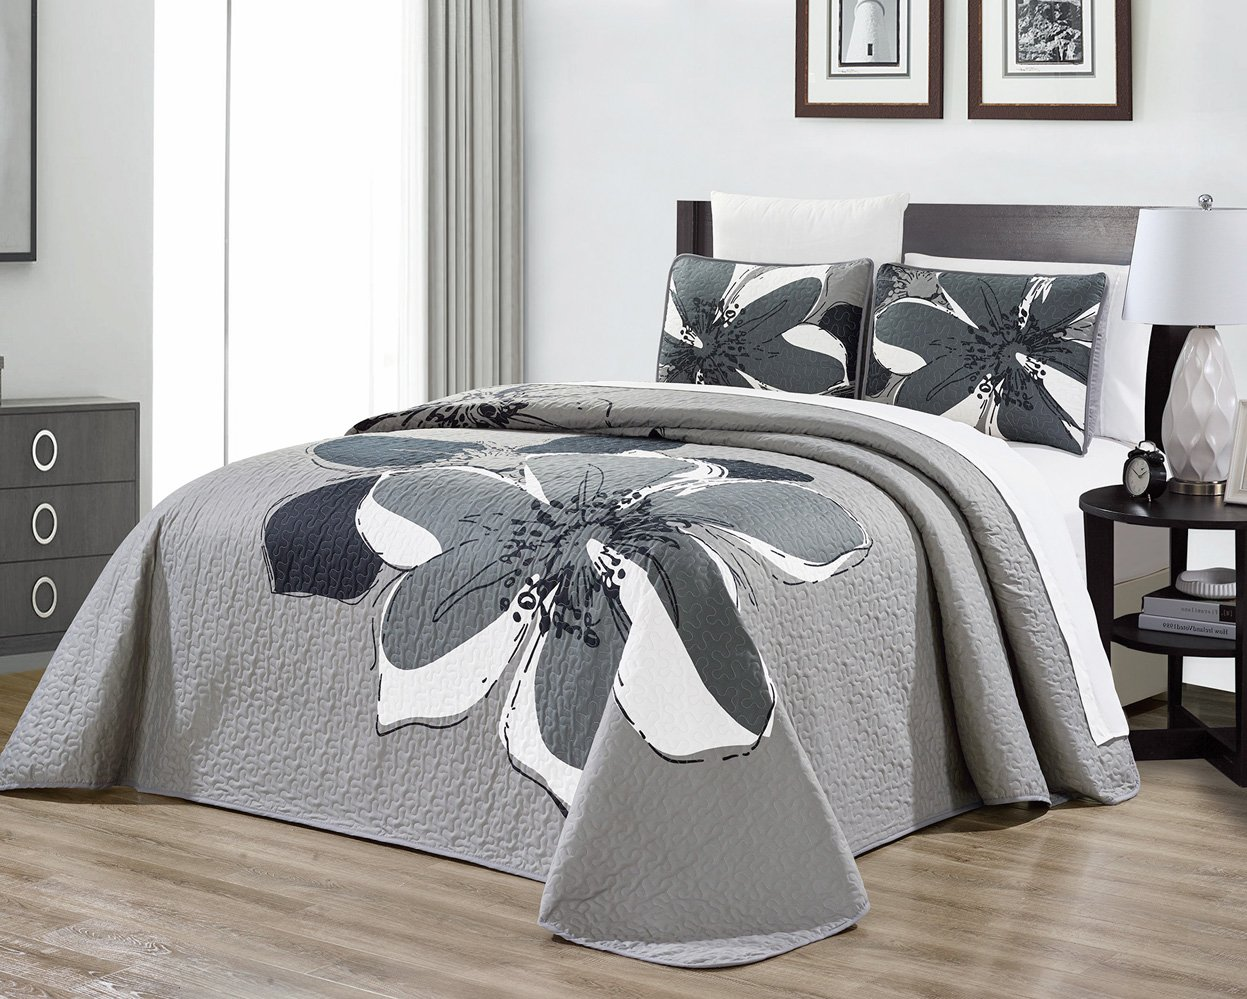 6-Piece Nova Floral Medallion Bedspread Coverlet Set with Fitted Sheet